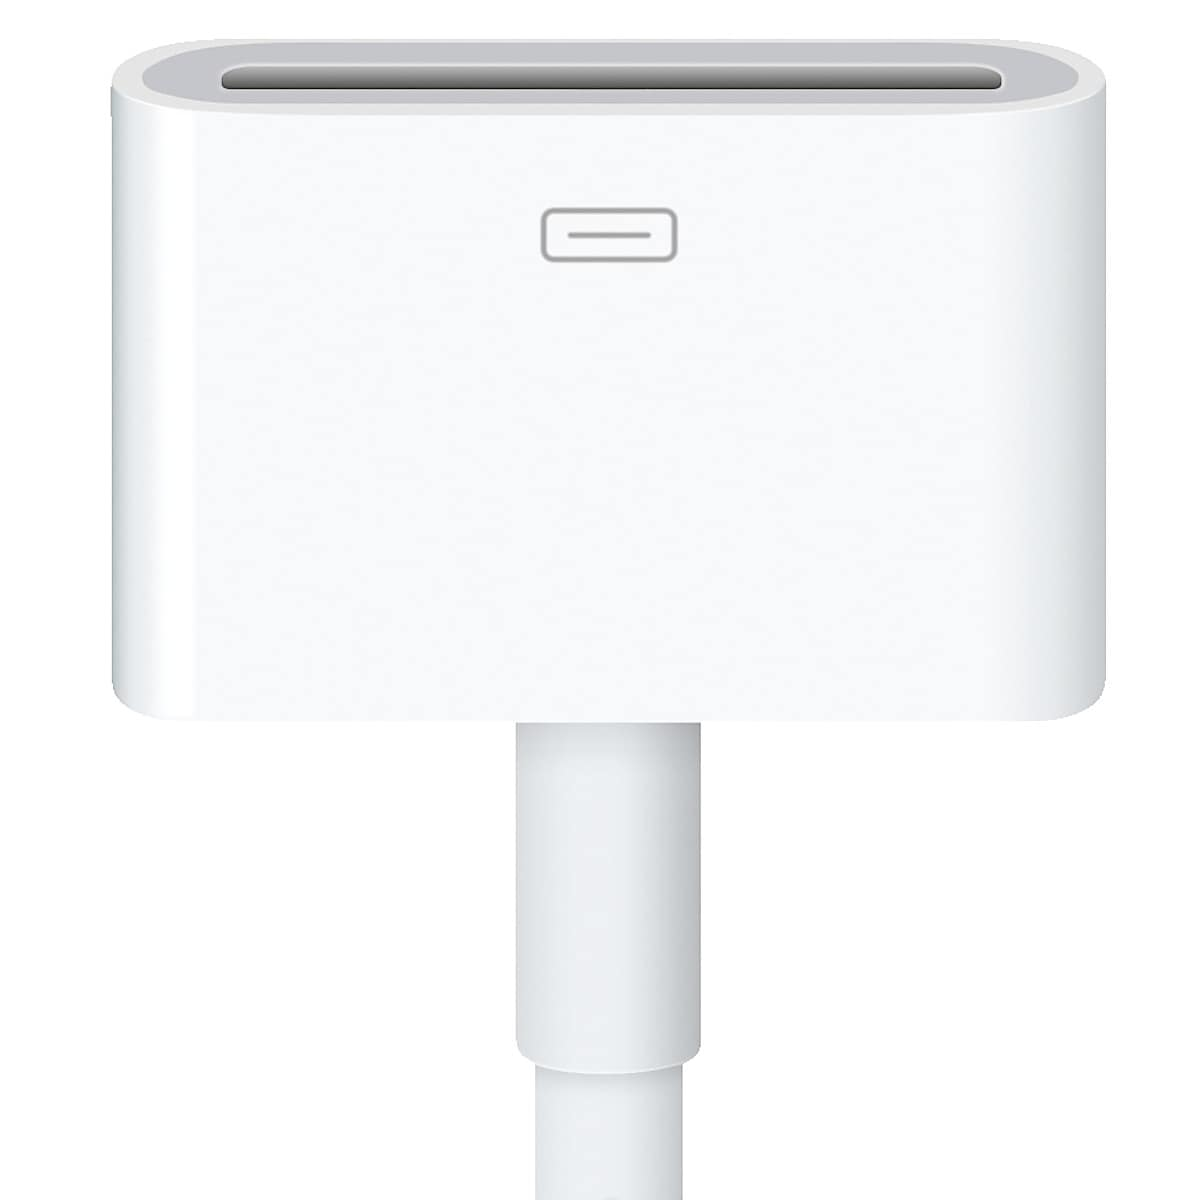 Apple Lightning Adaptor Cable for iPhone/iPod